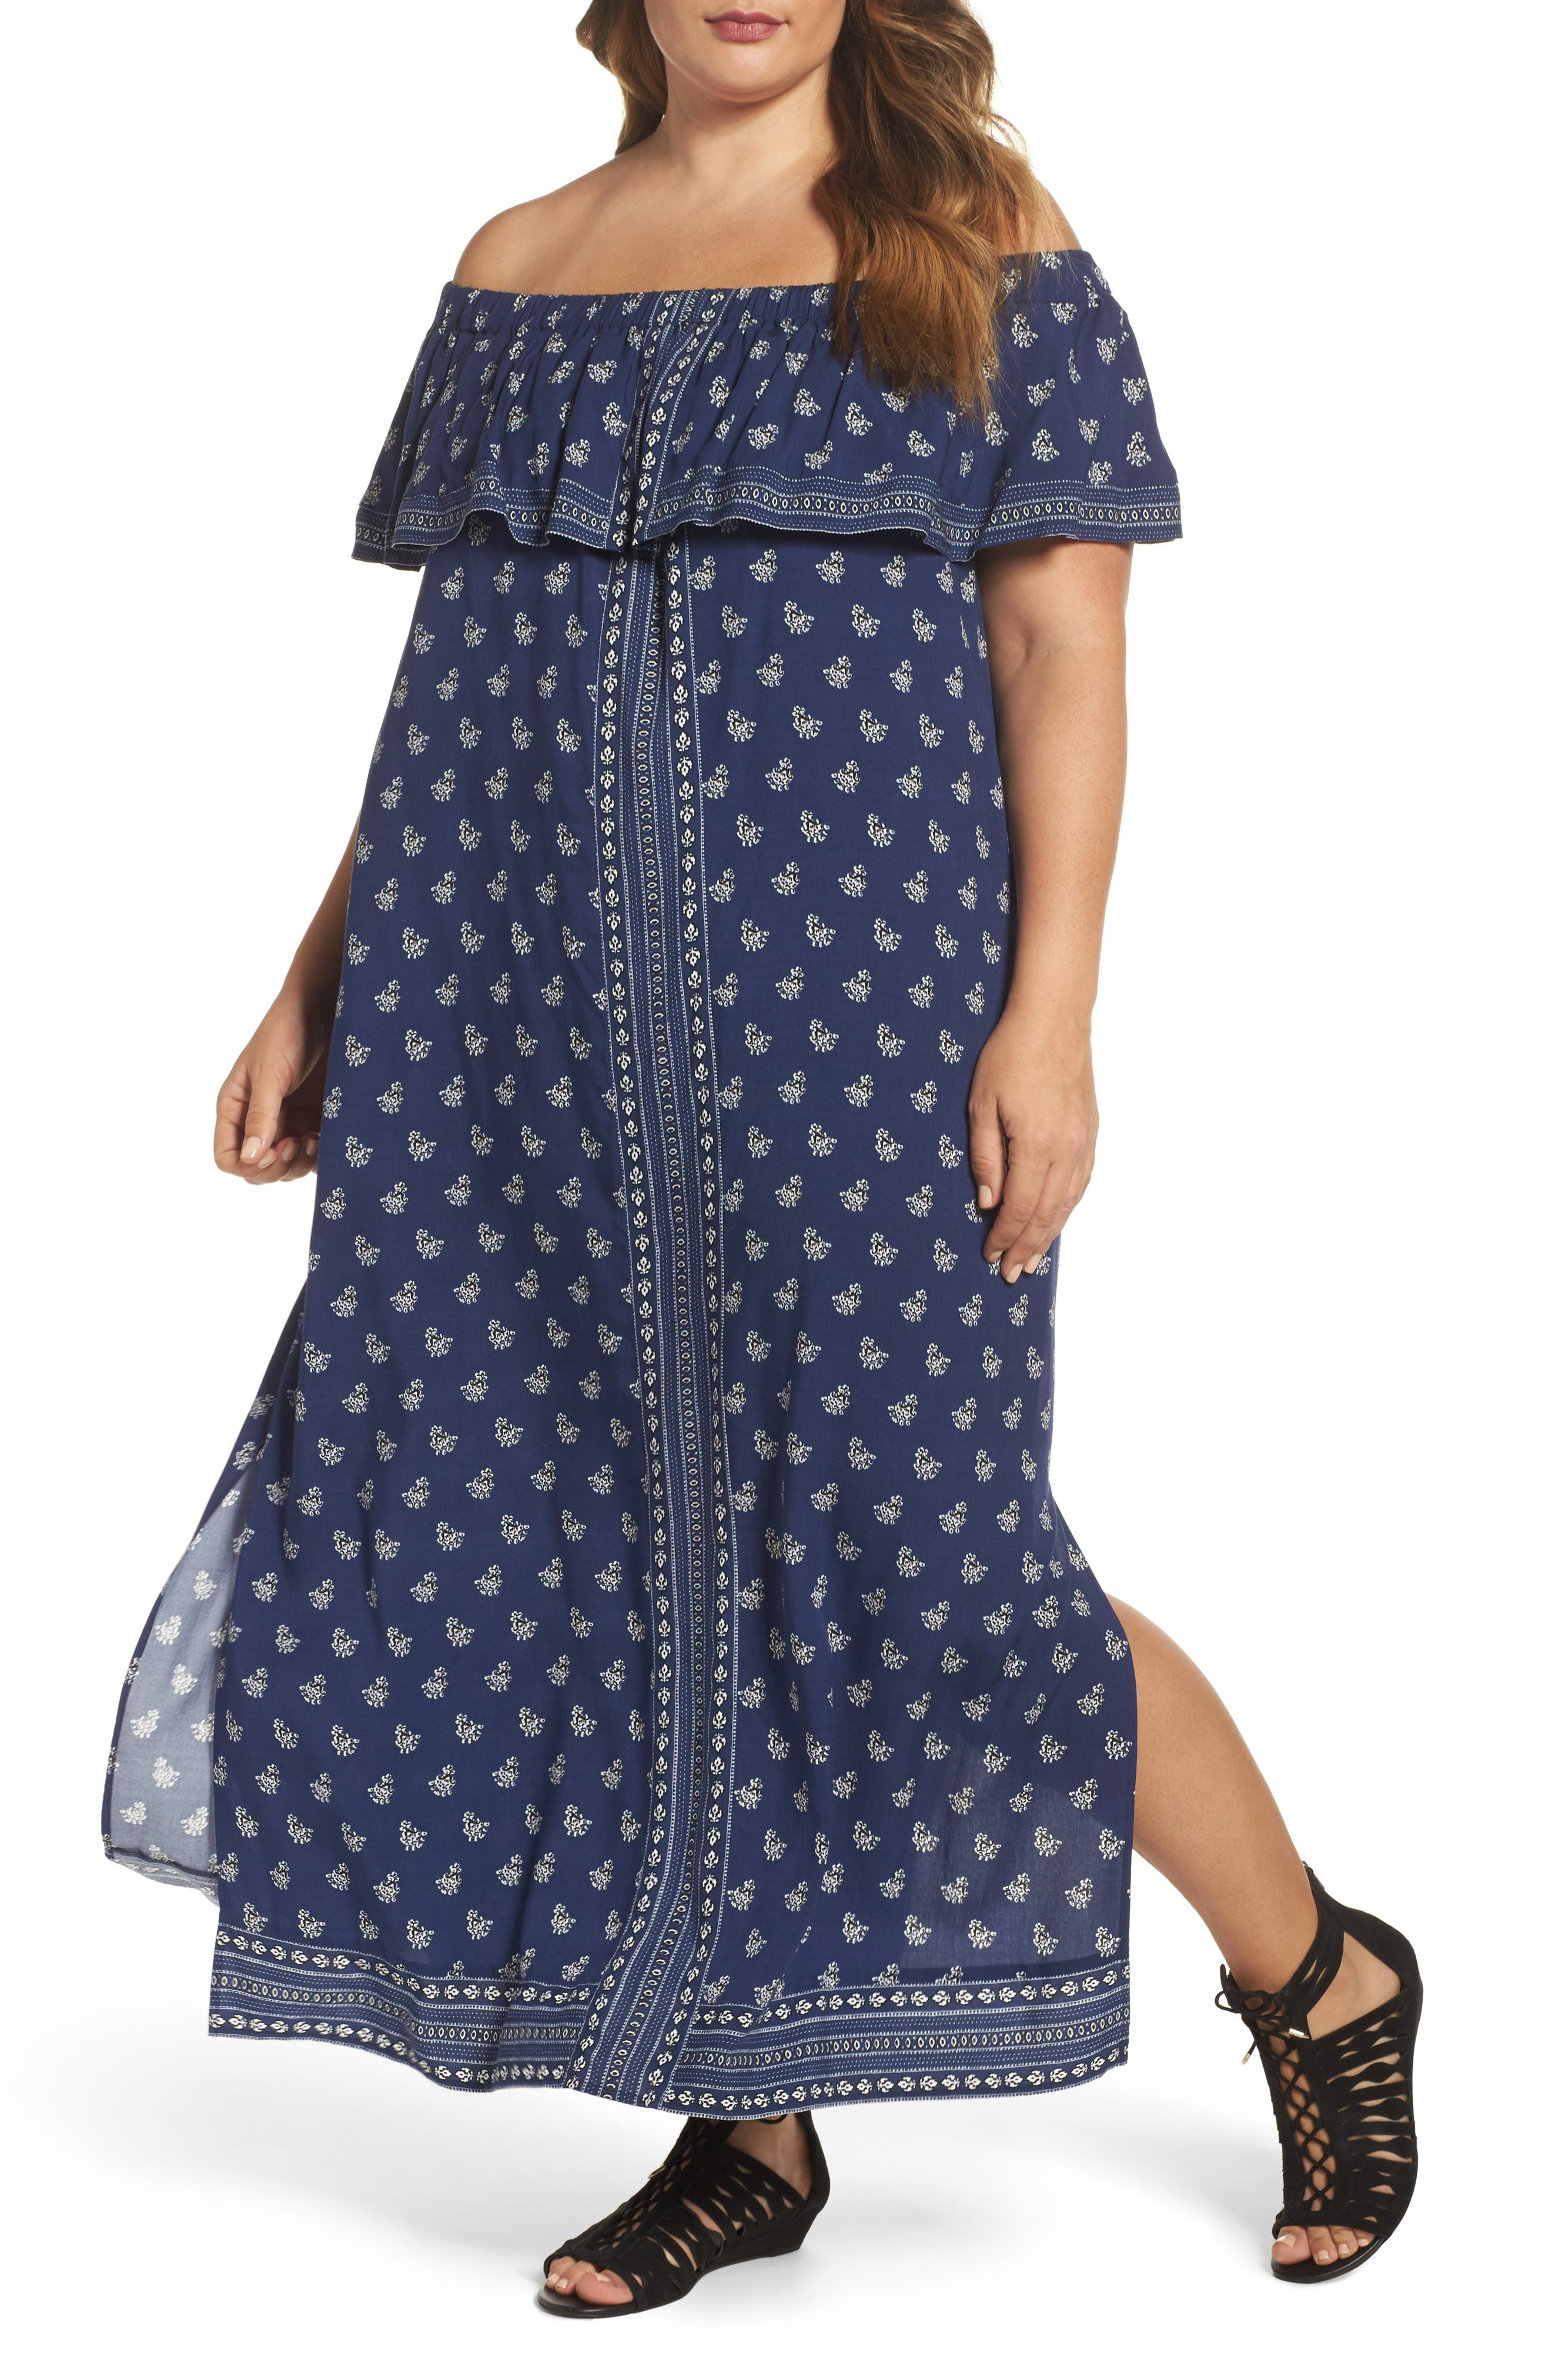 Alternate Image 1 Selected - Two by Vince Camuto Paisley Off the Shoulder Maxi Dress (Plus Size)